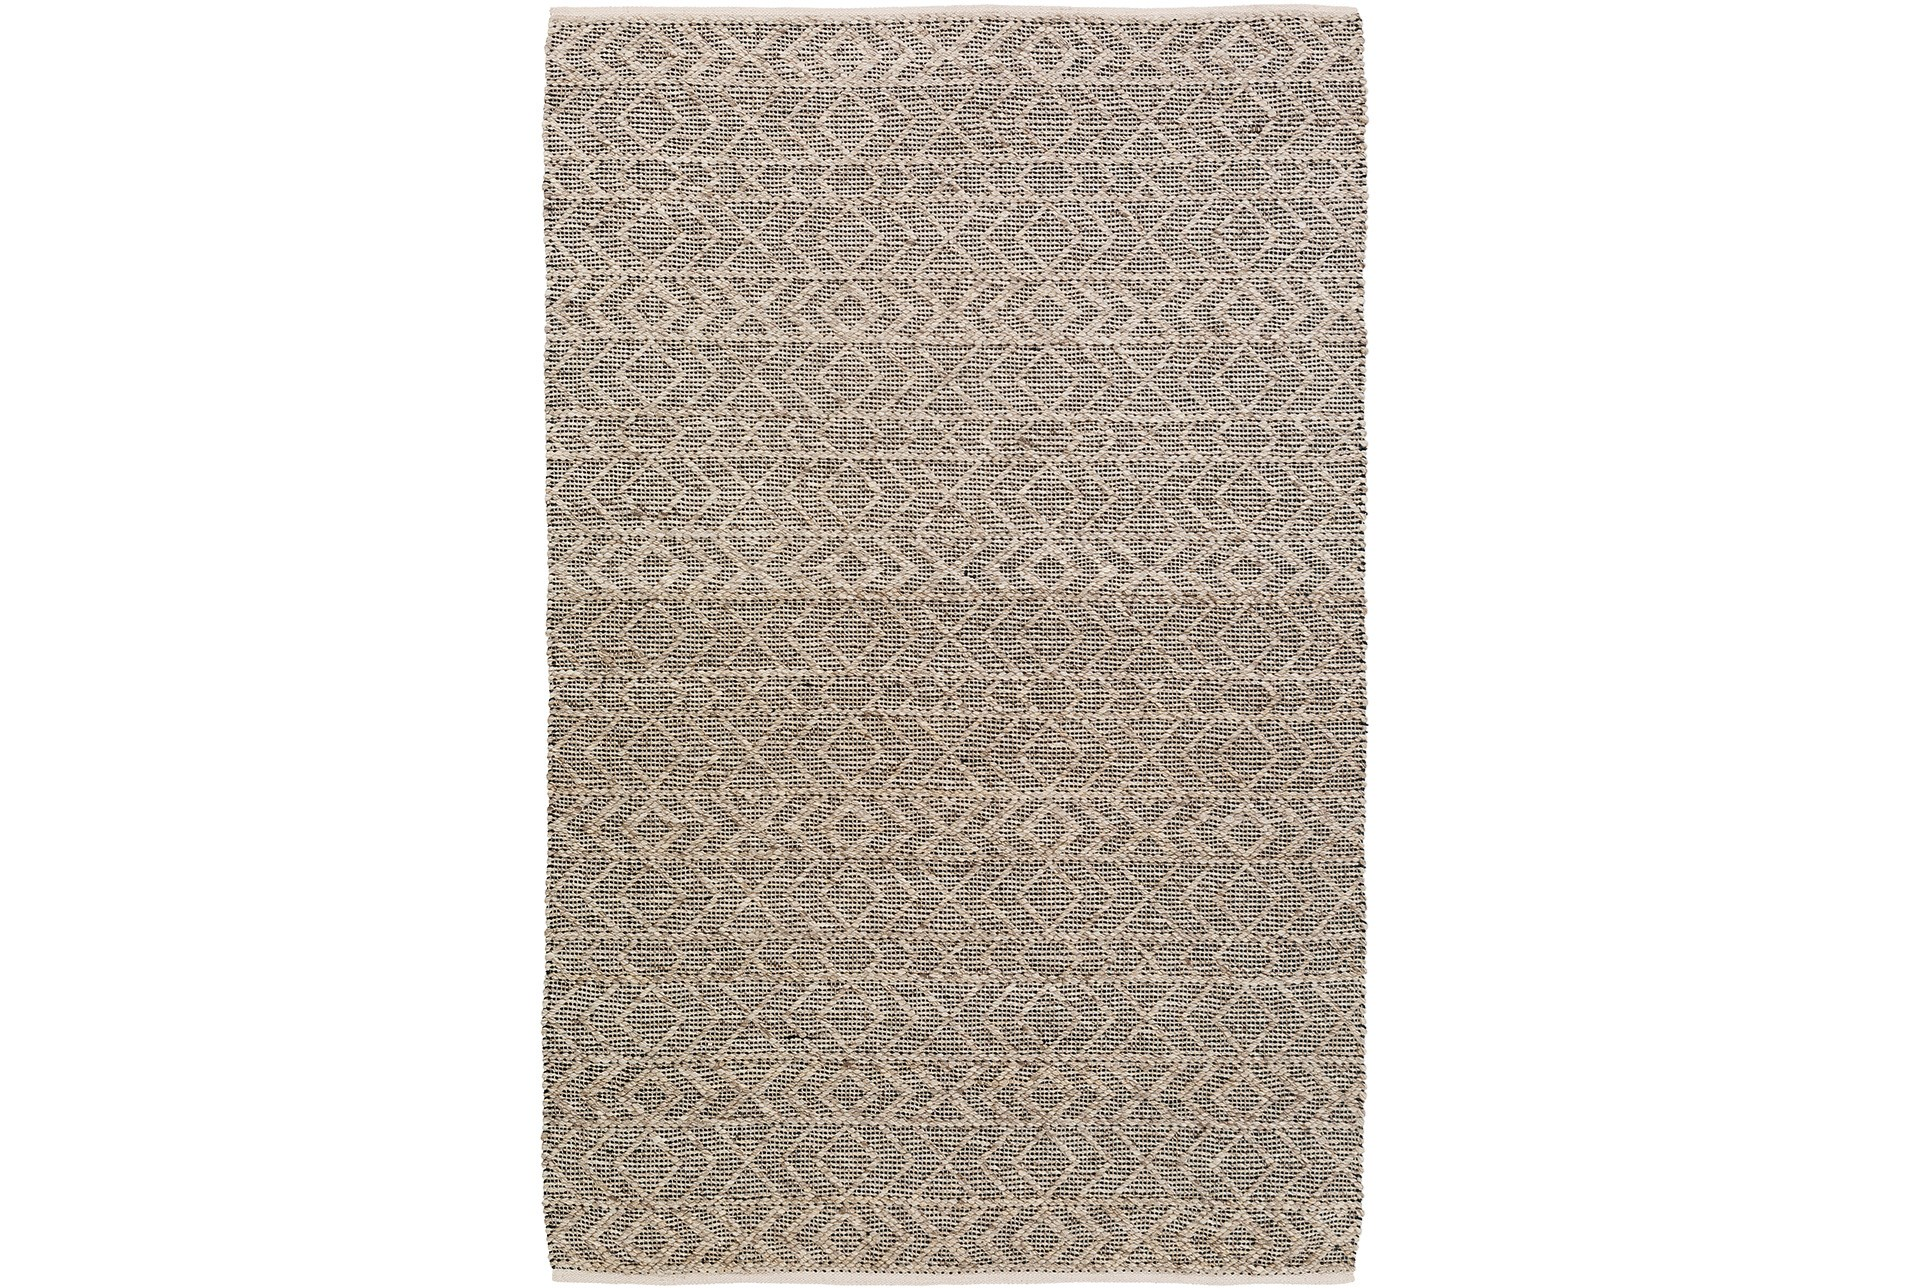 96x120 Rug Diamond Stripe Dark Grey Qty 1 Has Been Successfully Added To Your Cart